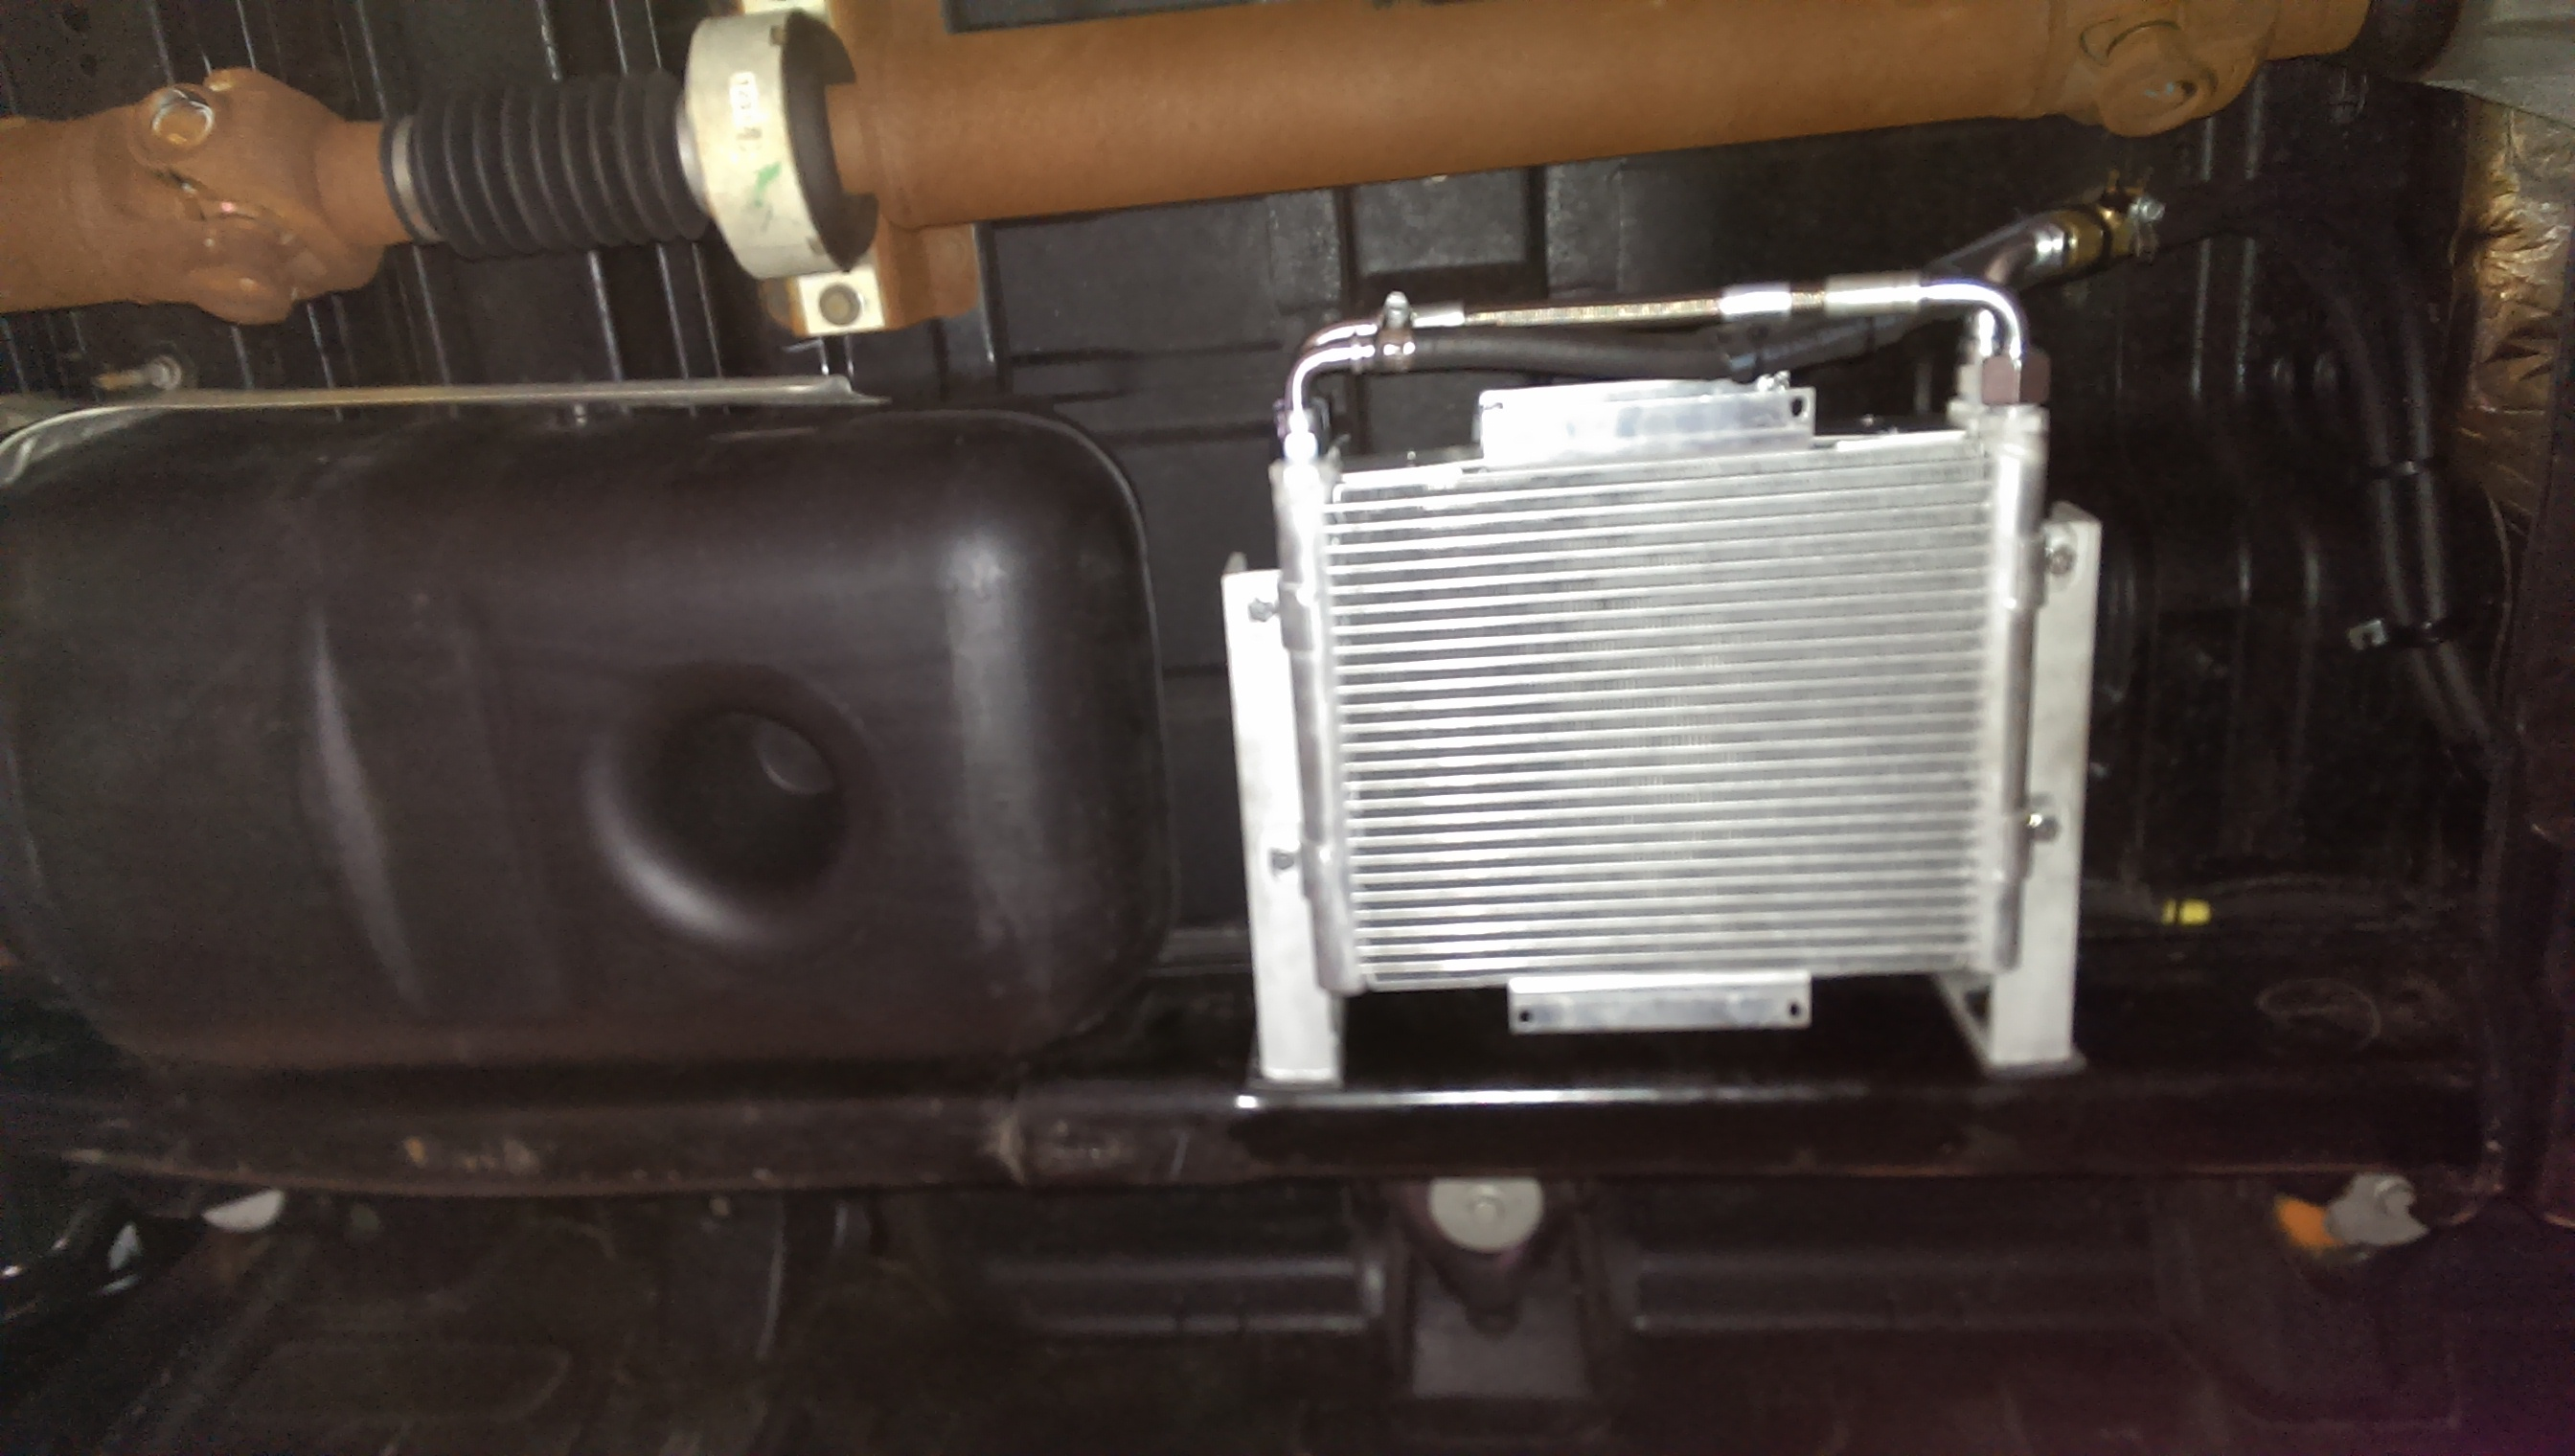 D Bd Dual Stacked Xtrude Trans Cooler Install Imag on Dodge Ram 2500 Diesel